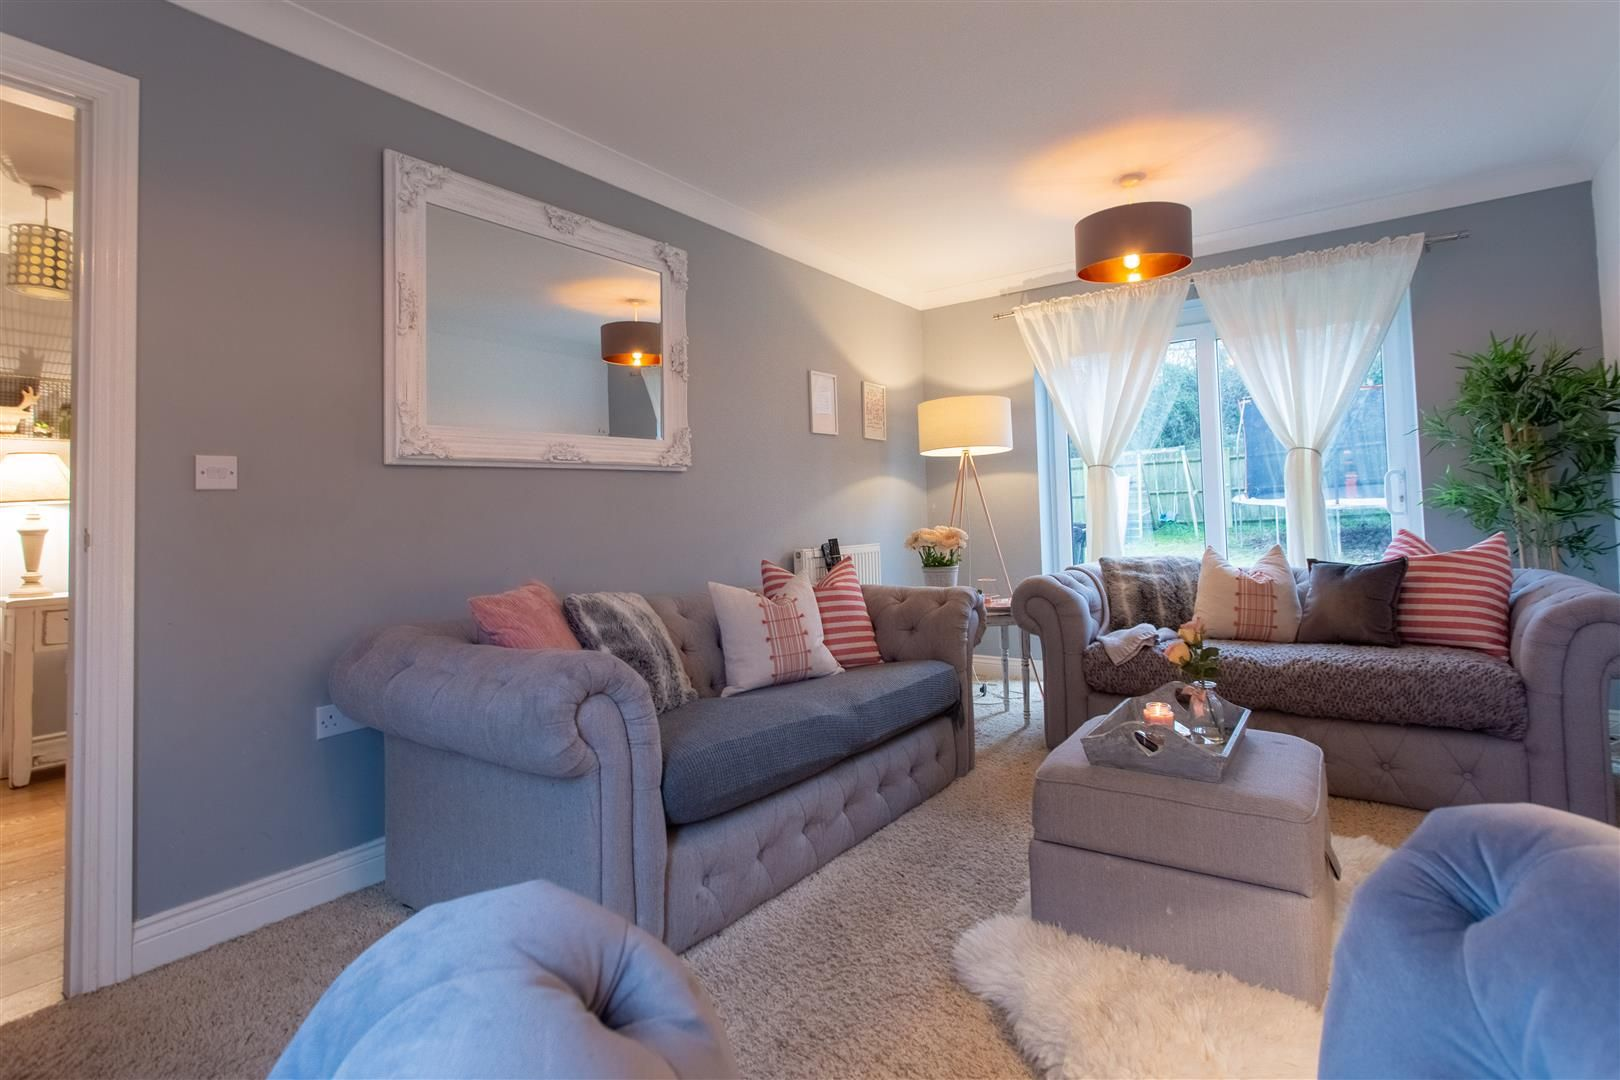 3 bed detached for sale in Hereford 7